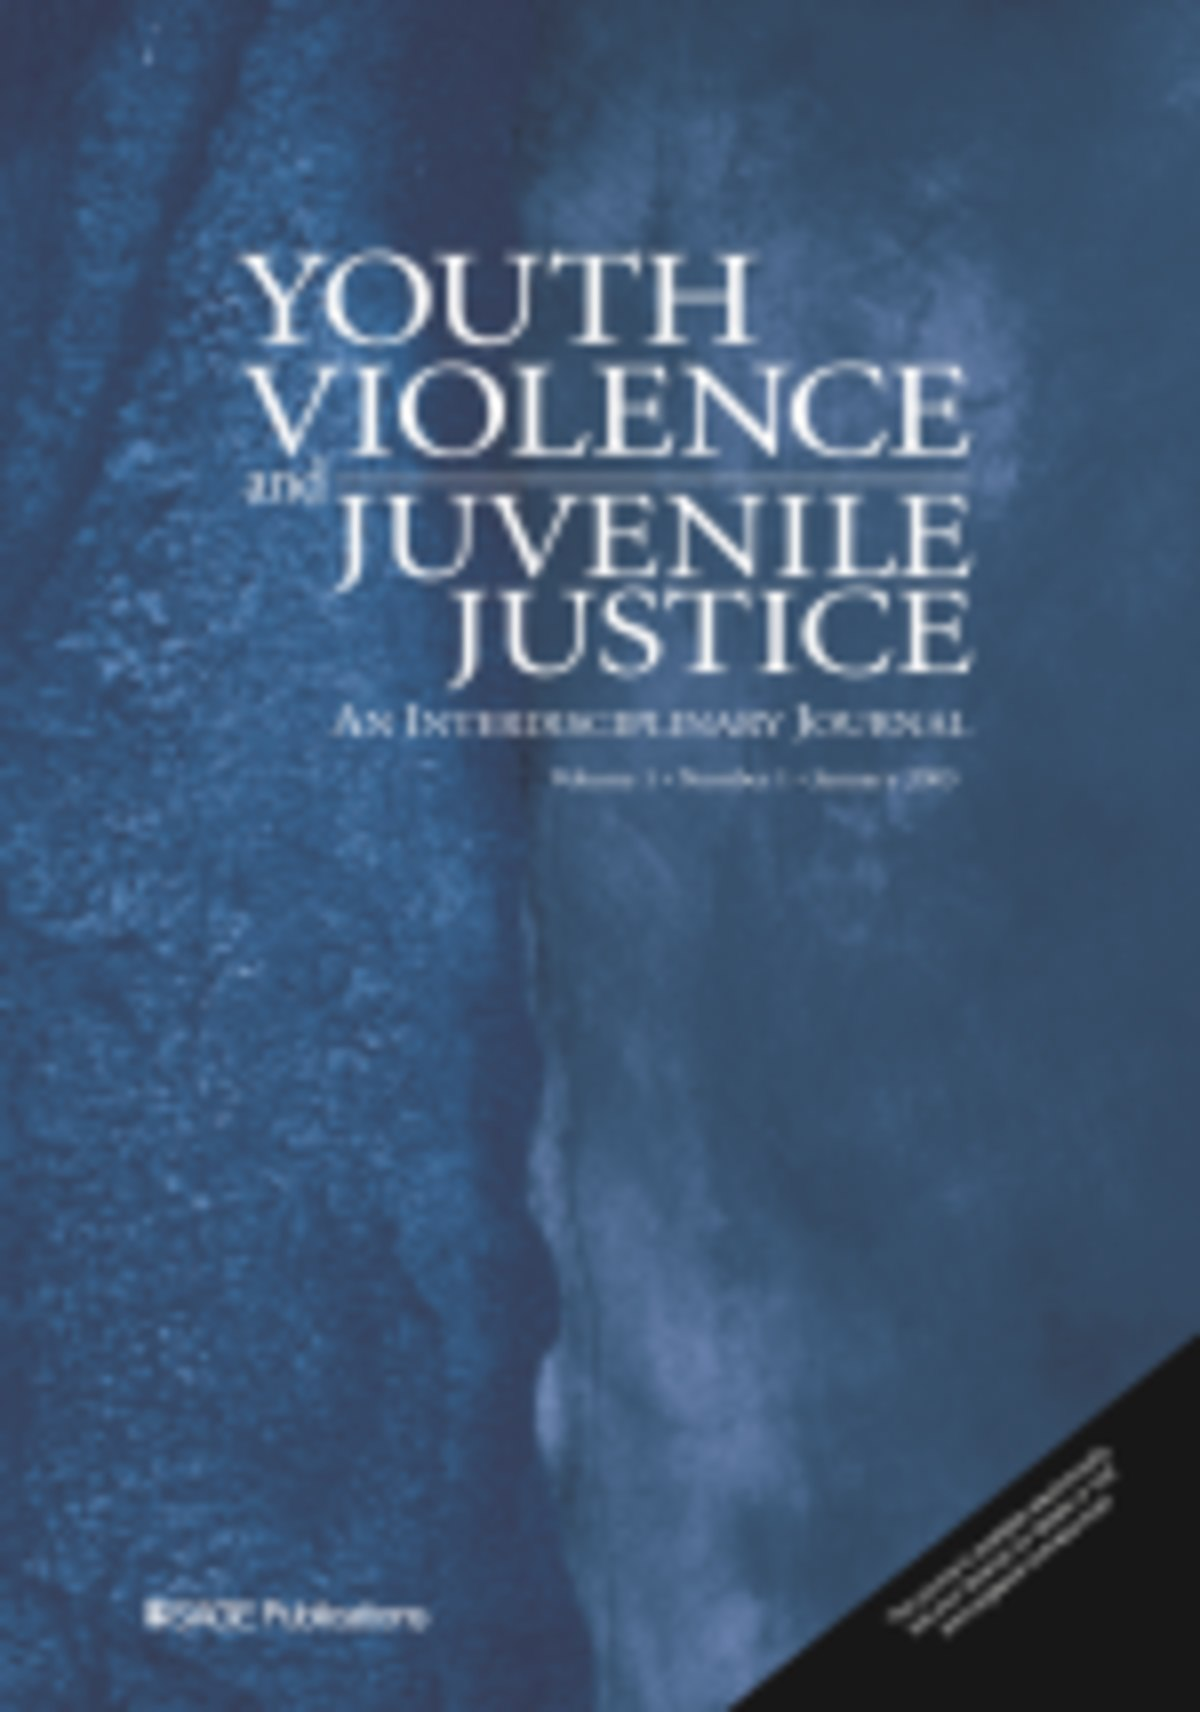 youth violence and the mass media Exposure to violence in media, including television, movies, music, and video games, represents a significant risk to the health of children and adolescents extensive research evidence indicates that media violence can contribute to aggressive behavior, desensitization to violence, nightmares, and.